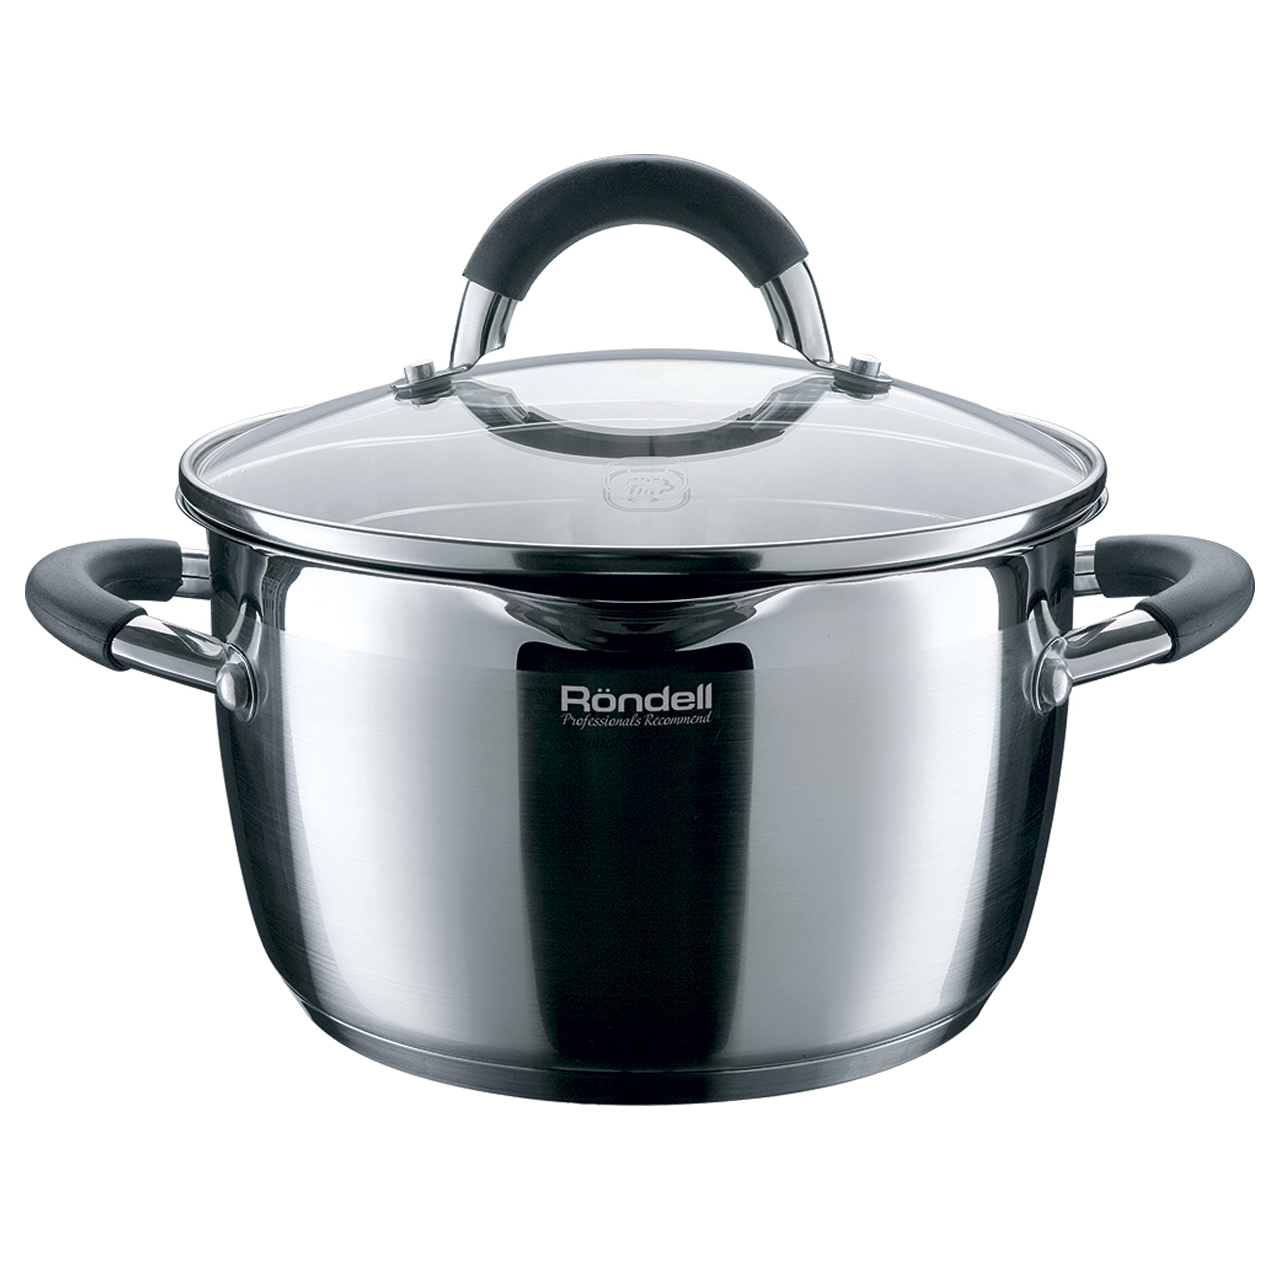 Saucepan with lid Rondell Flamme 20 cm (3,2 l) RDS-024 (Diameter 20 cm, volume of 3.2 L stainless steel, suitable for all types of plates)